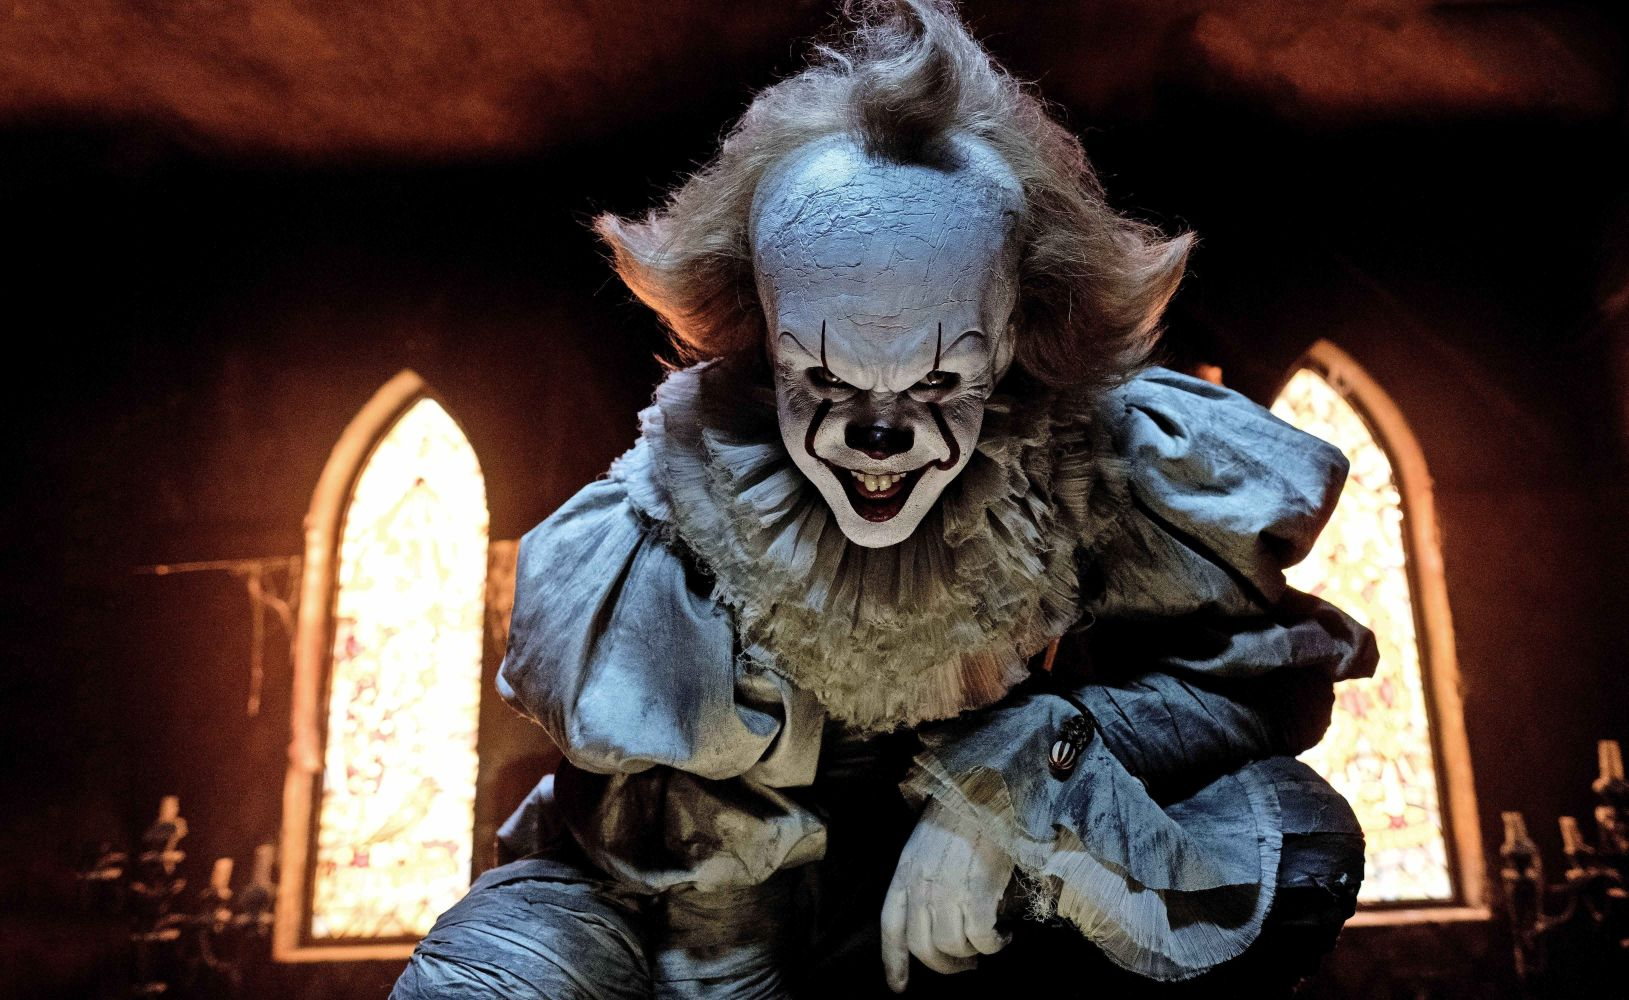 [CA IT stephenking pennywise]